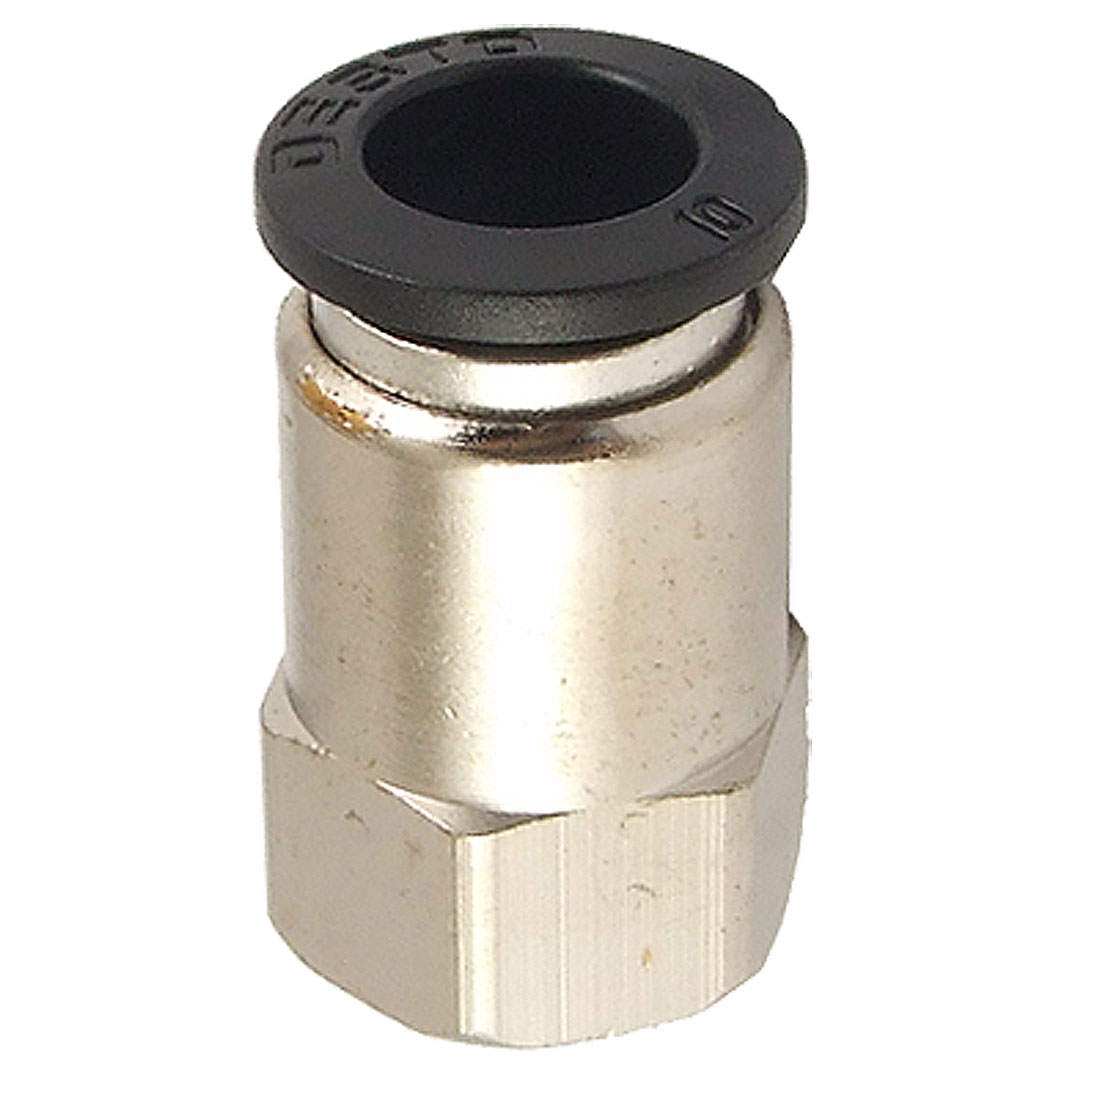 11mm Female Thread Quick Coupler Connector for 10mm OD Tube